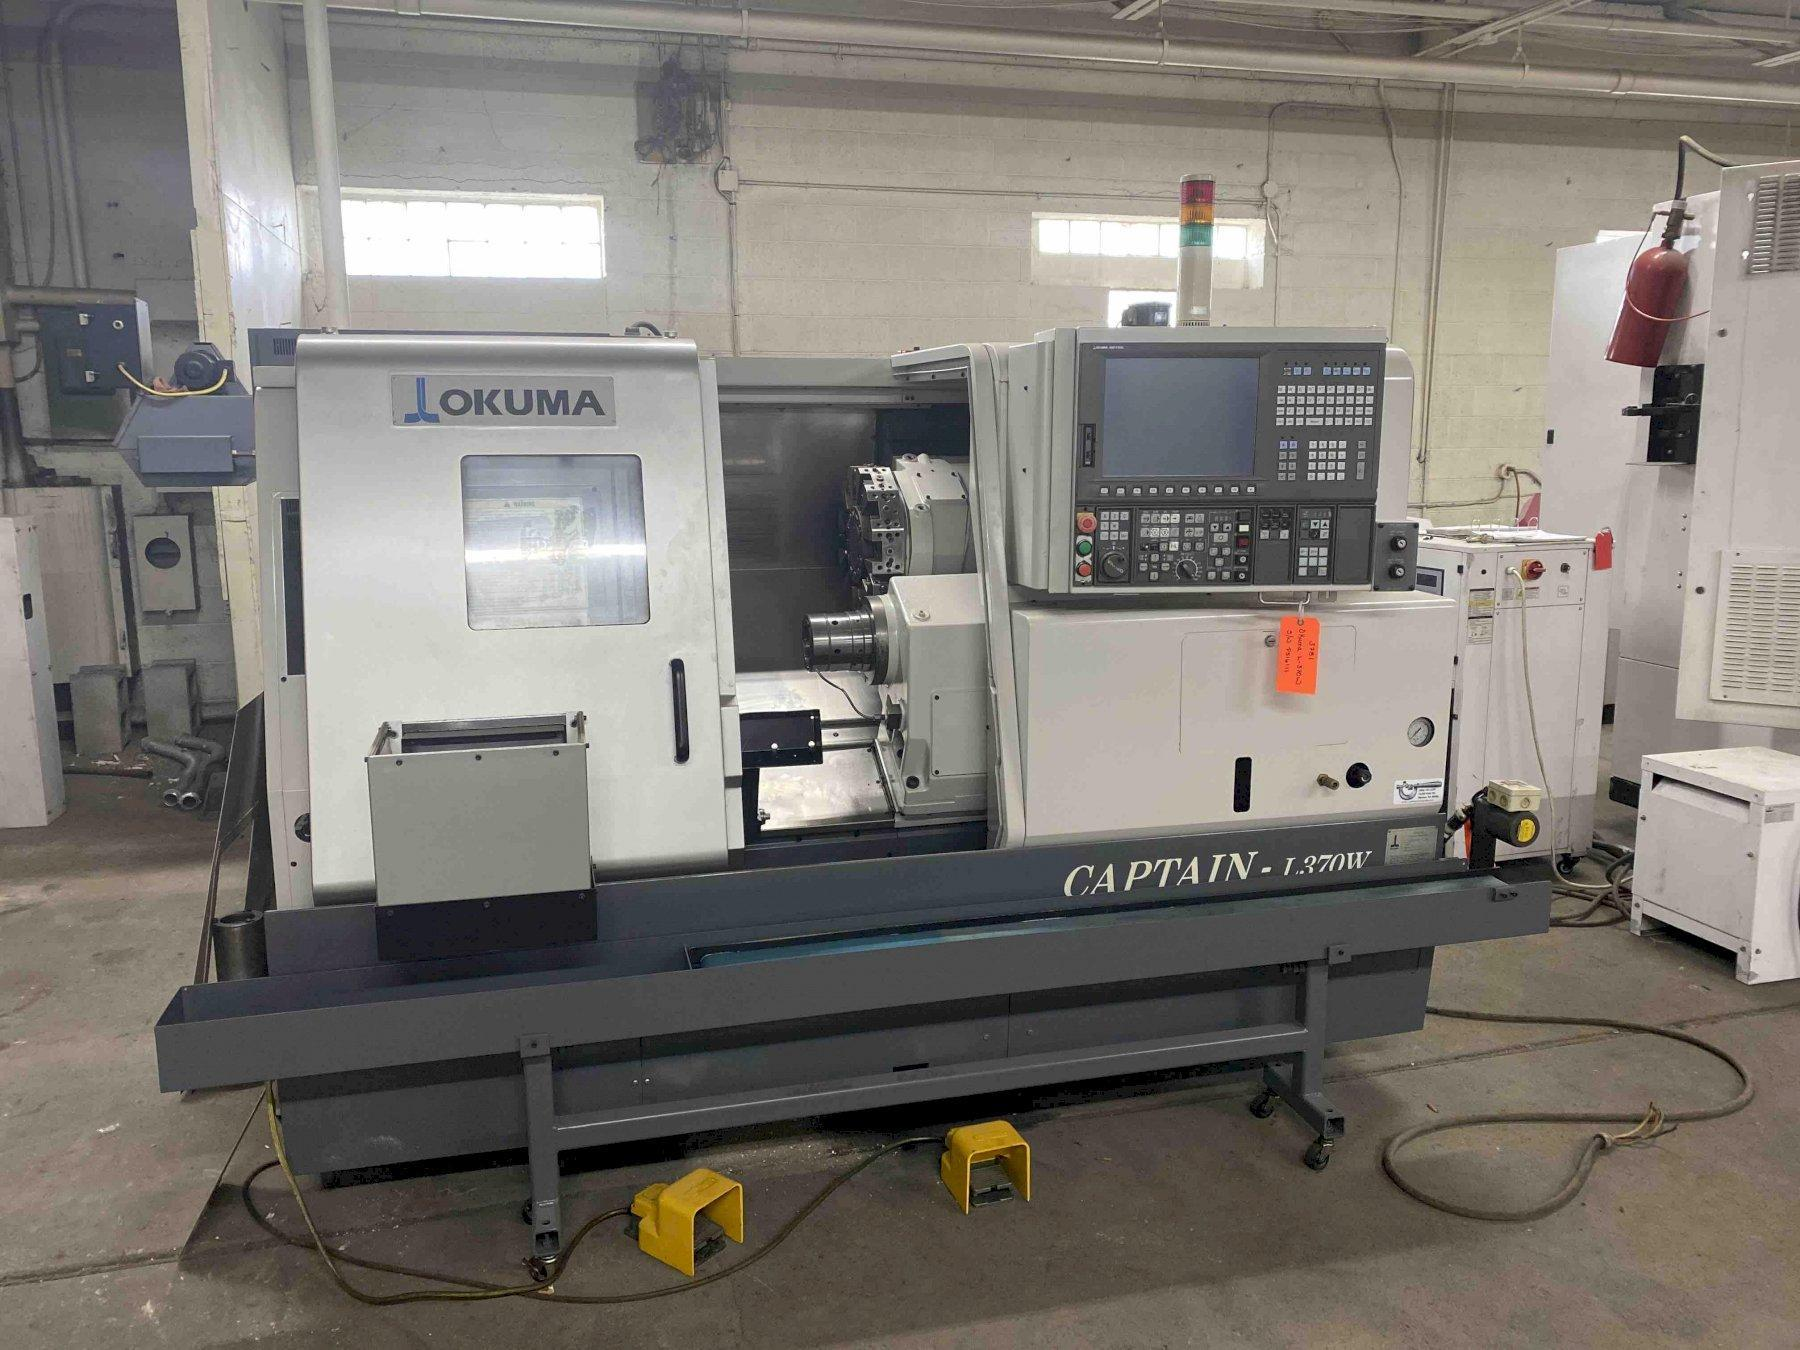 "Okuma Captain L370BBW CNC Lathe, OSP P200L, 21"" Swing, 3.15"" Bar Capacity, Subspindle, 12 Position Turret, 3800 RPM, 20 HP,  Parts Catcher, Parts Conveyor, Tool Eye, Bar Feed, Collet Chucks, Holders, Low Hours, 2007"